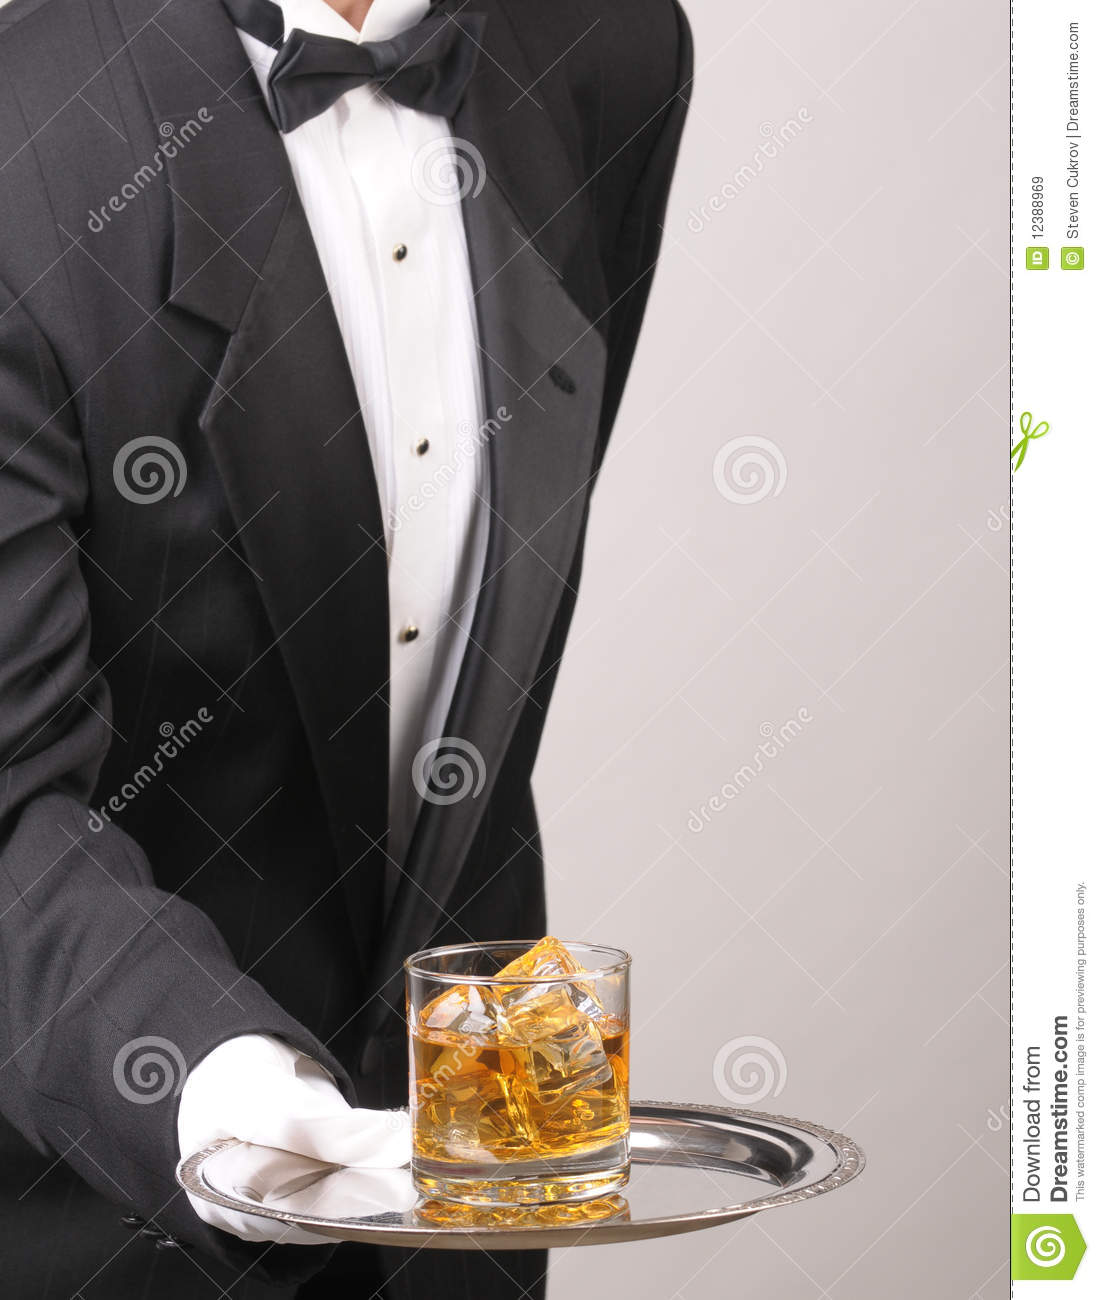 Butler holding Cocktail on tray